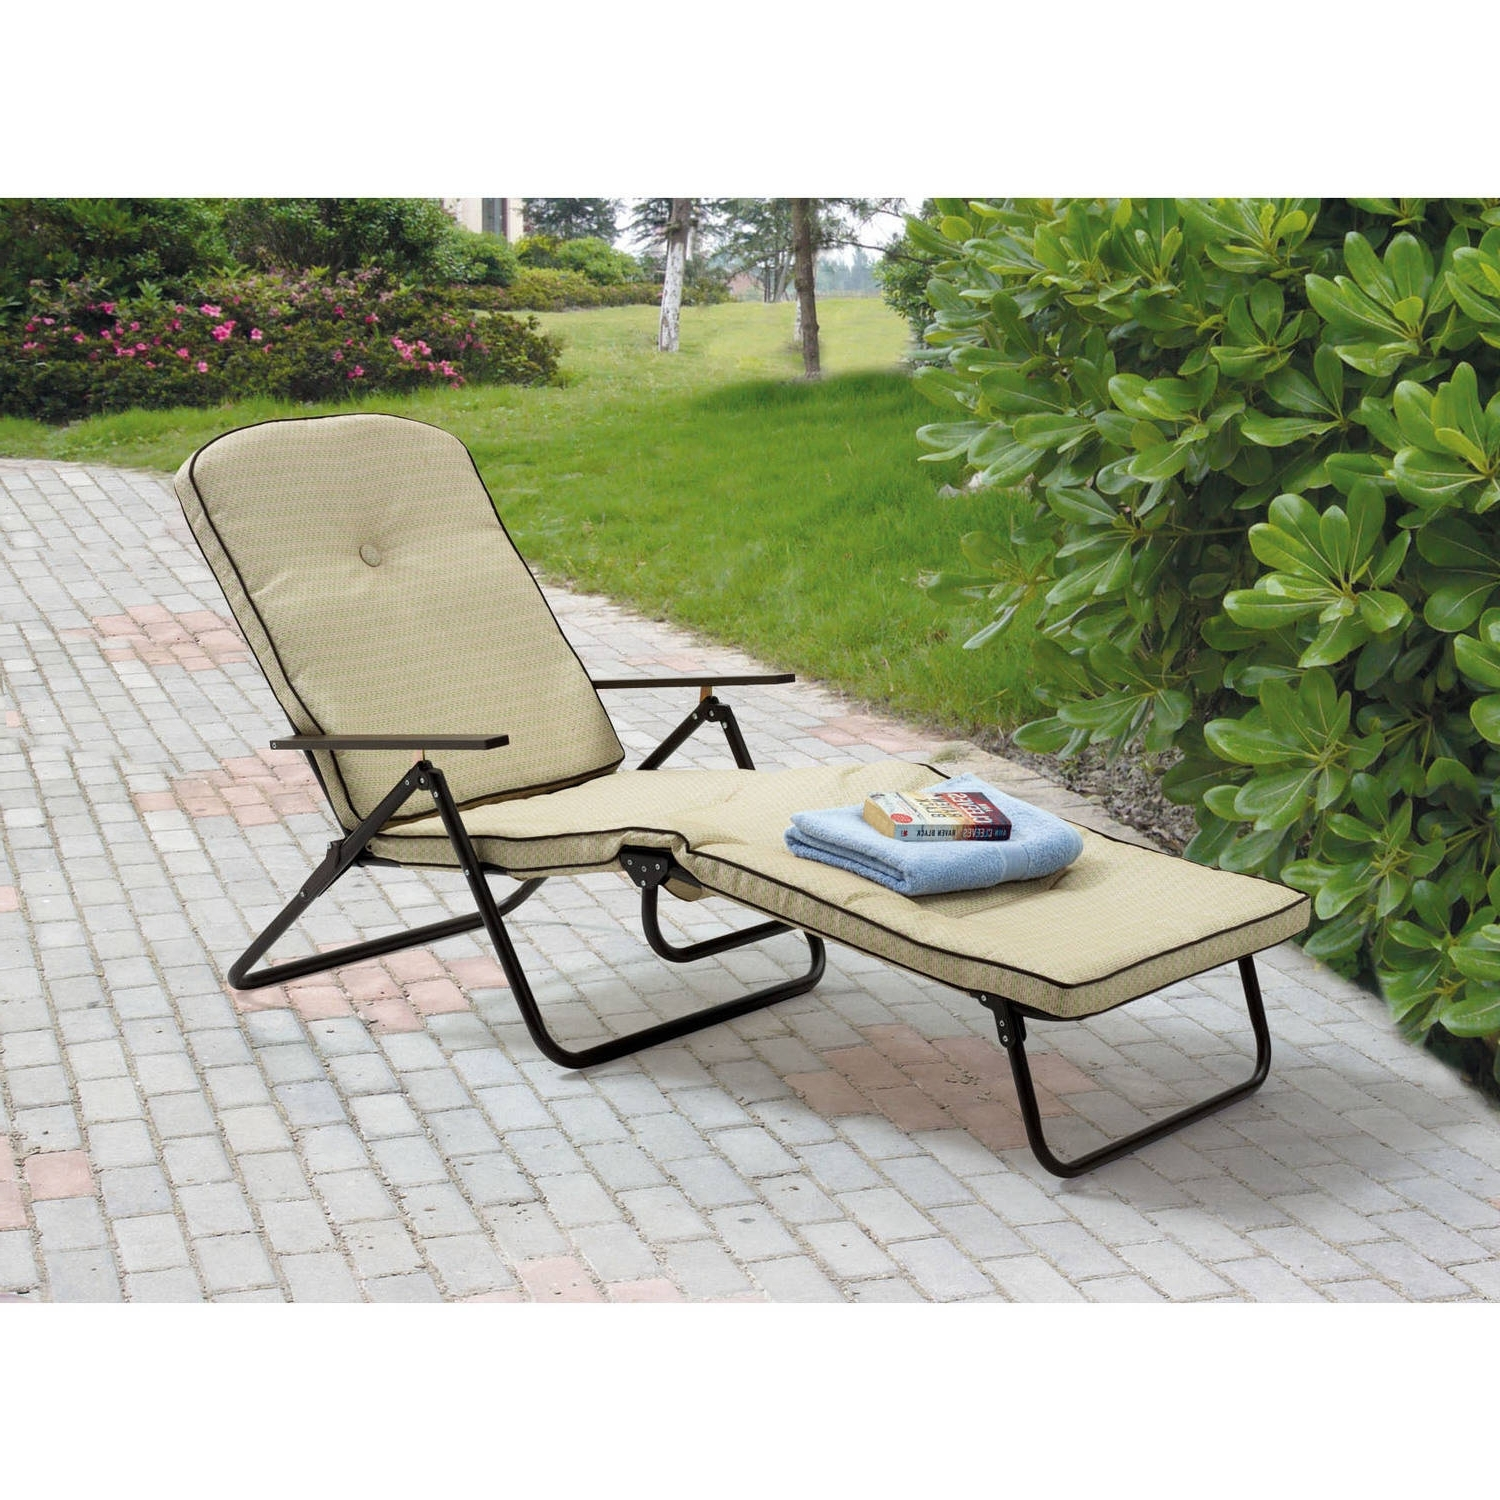 Most Popular Picture 5 Of 35 – Walmart Patio Lounge Chairs New Mainstays With Chaise Lounge Chairs At Walmart (View 10 of 15)